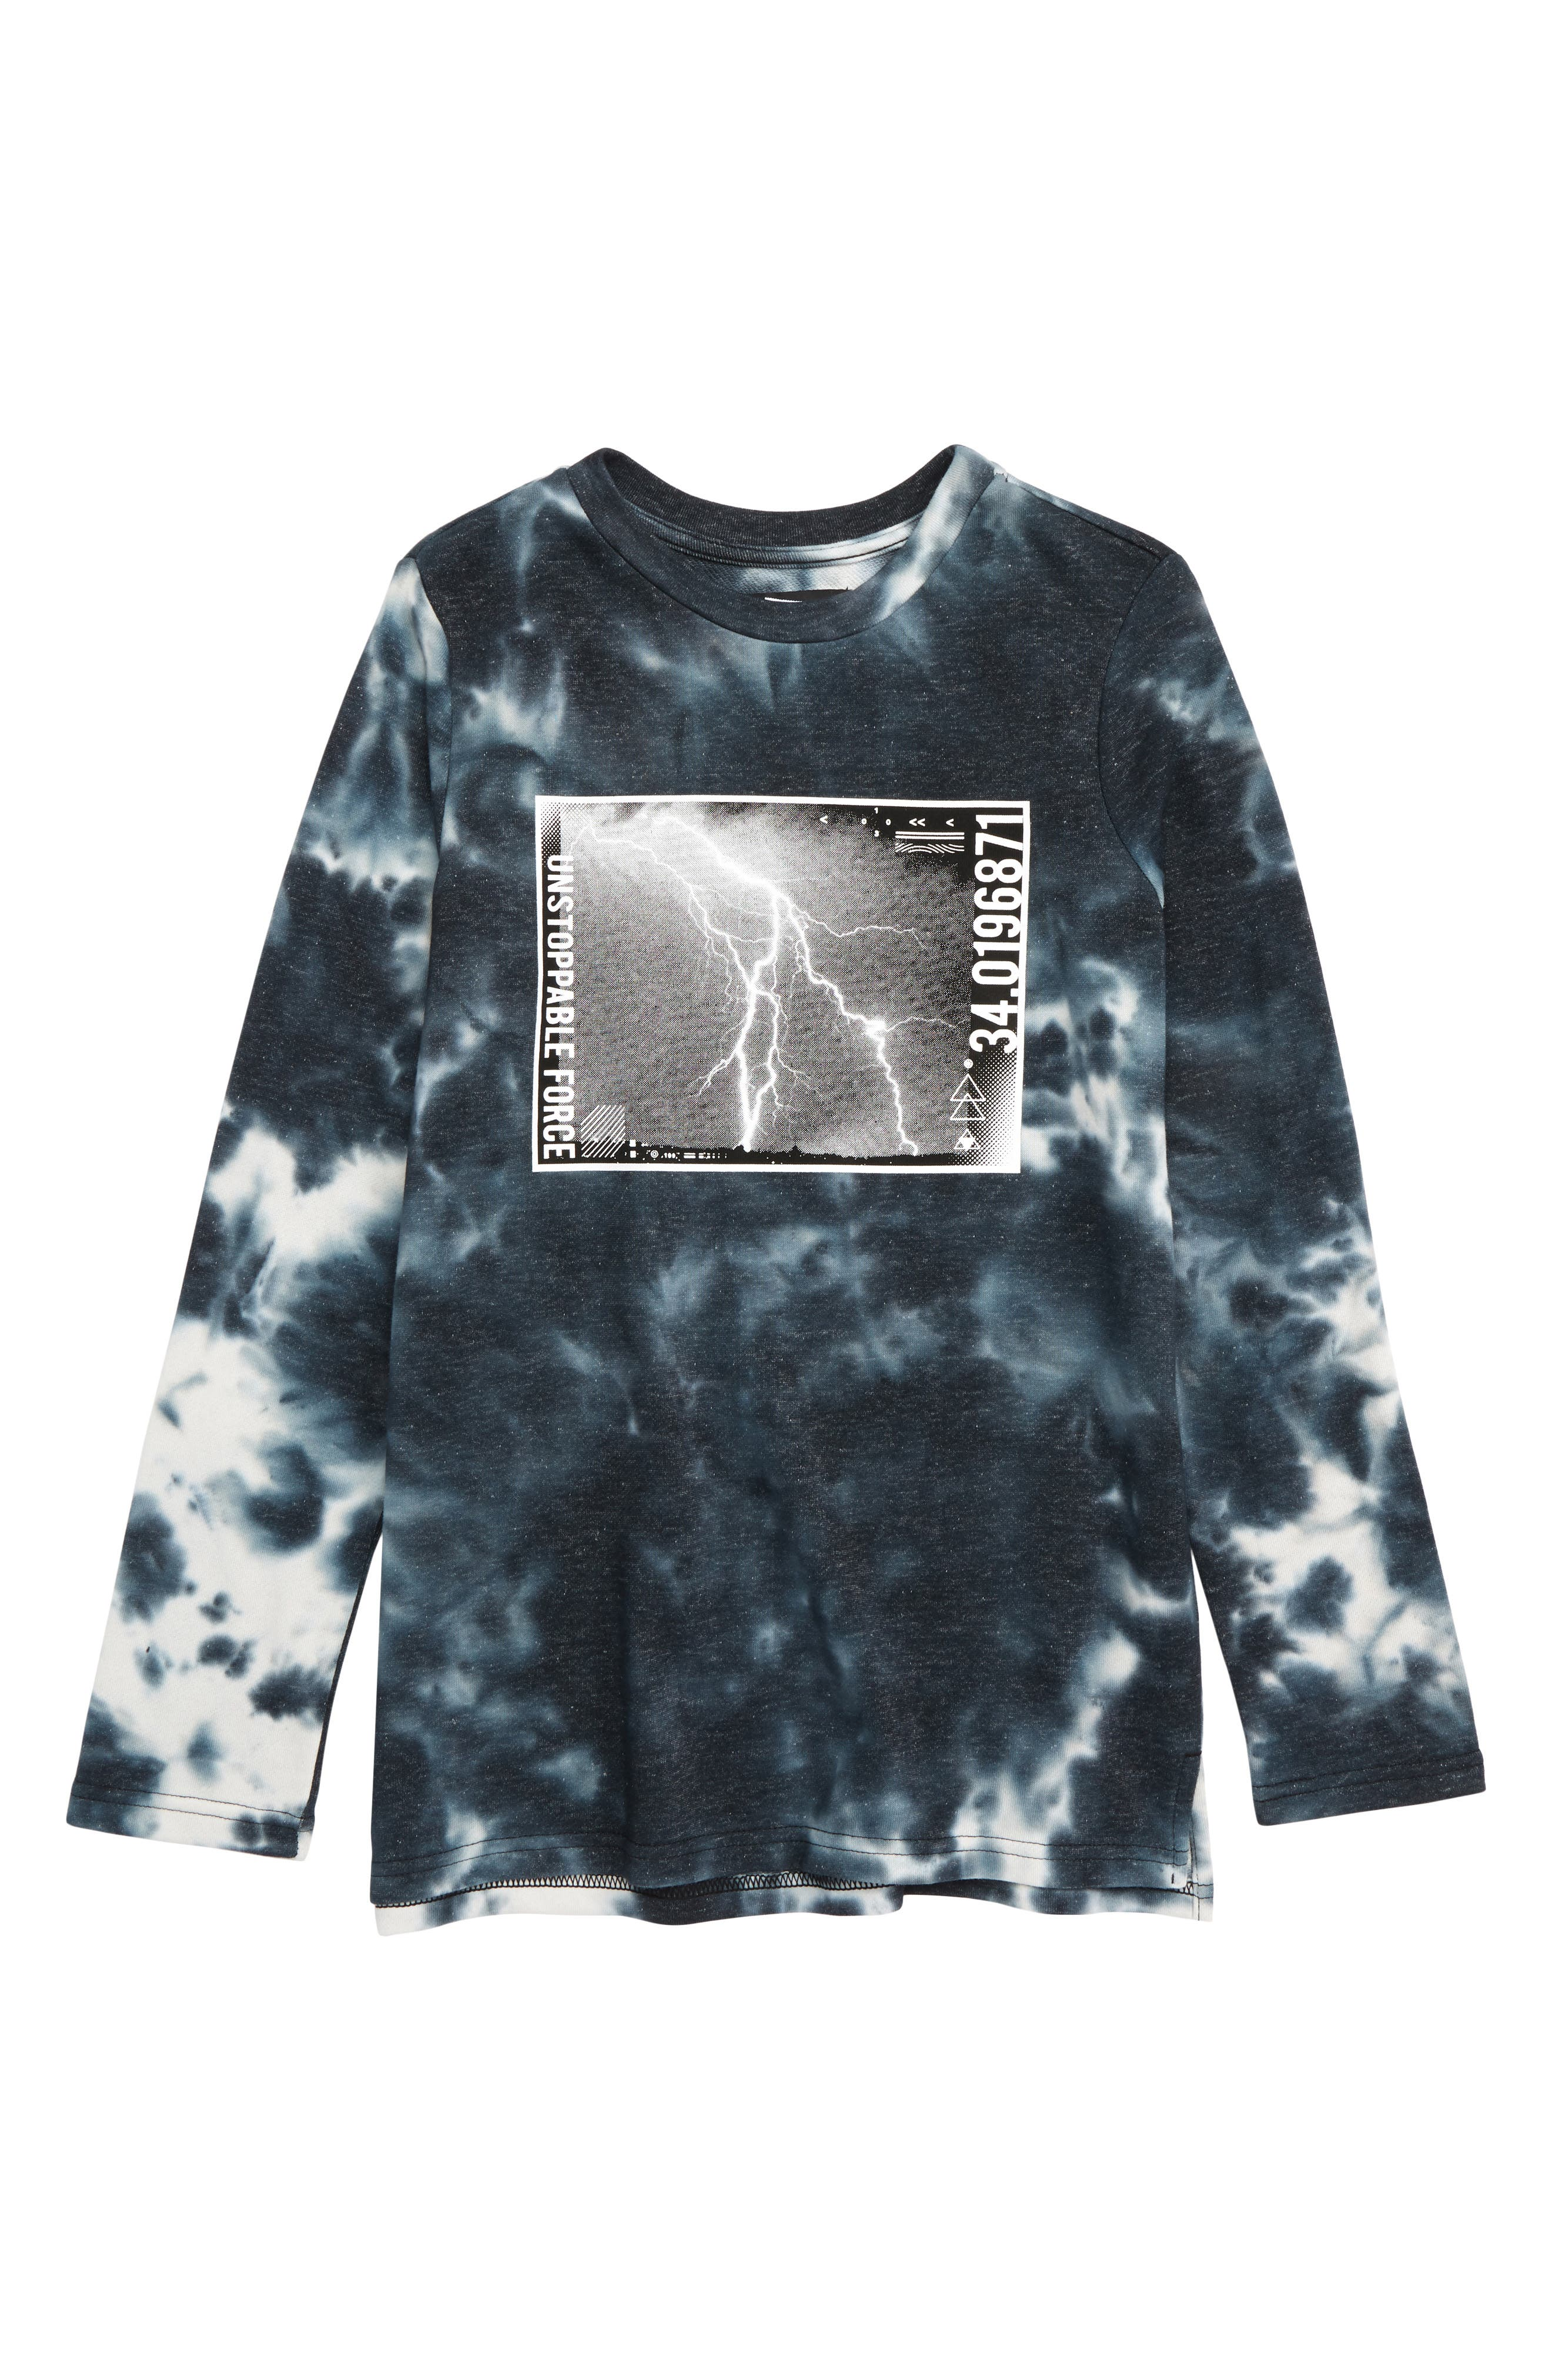 5TH AND RYDER Lightning Graphic Long Sleeve T-Shirt, Main, color, LIGHTNING BLACK/ WHITE TIEDYE